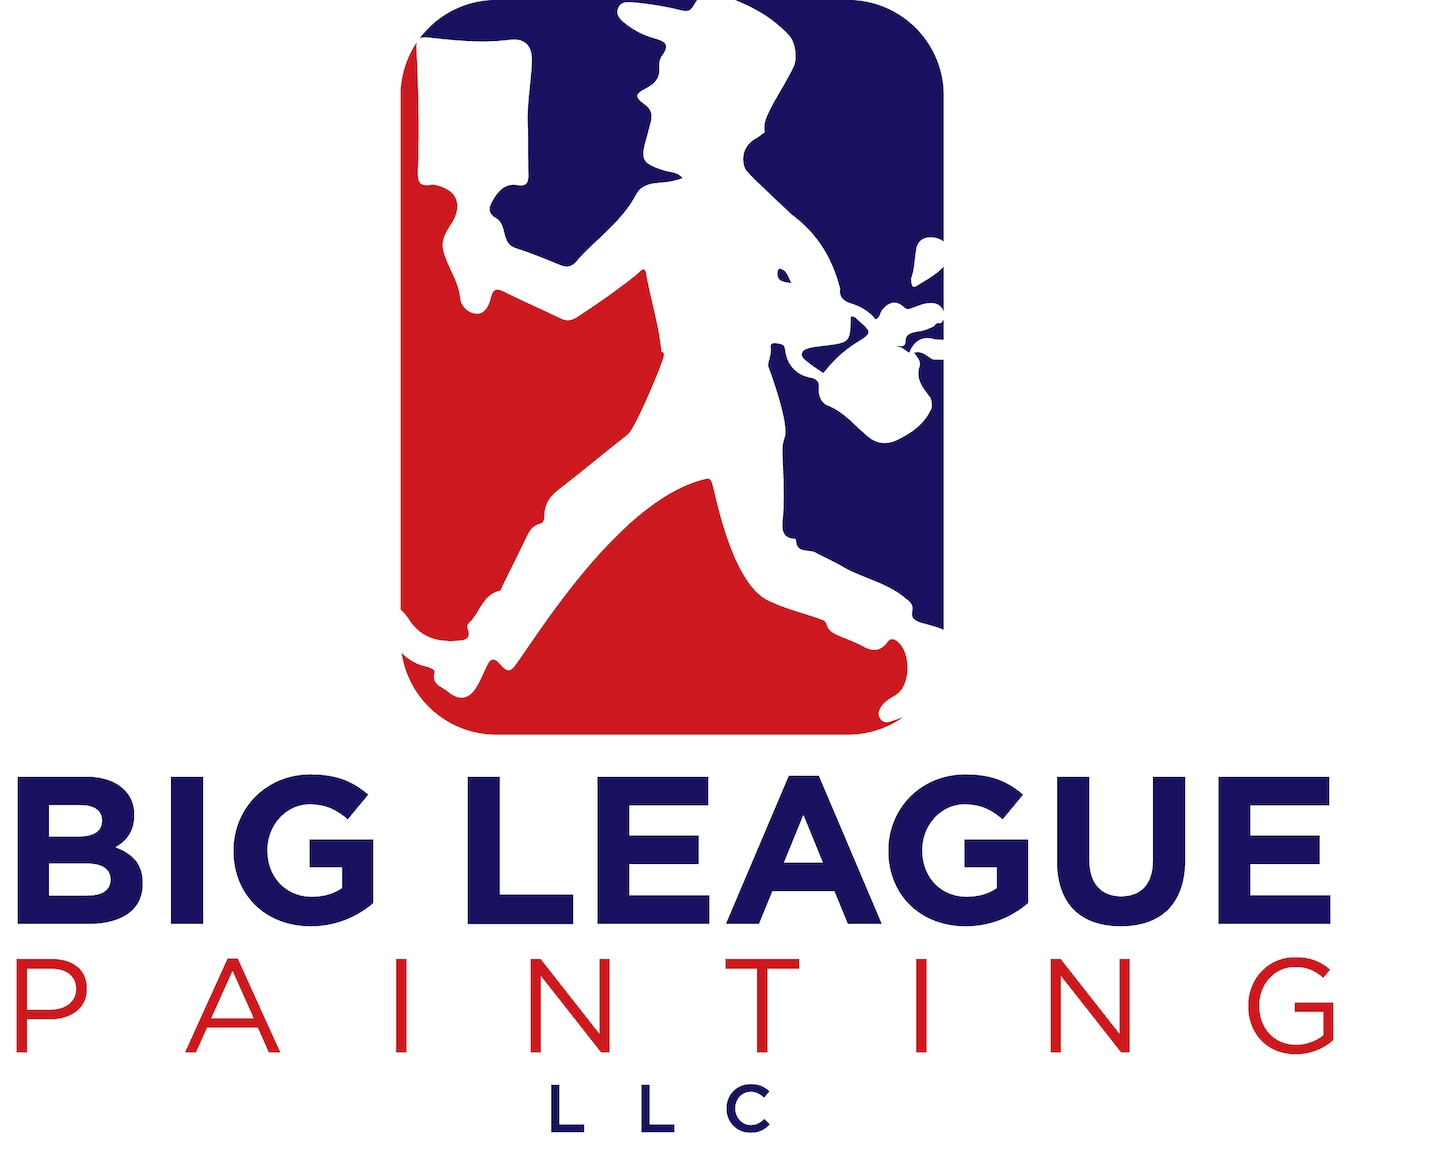 Big League Painting